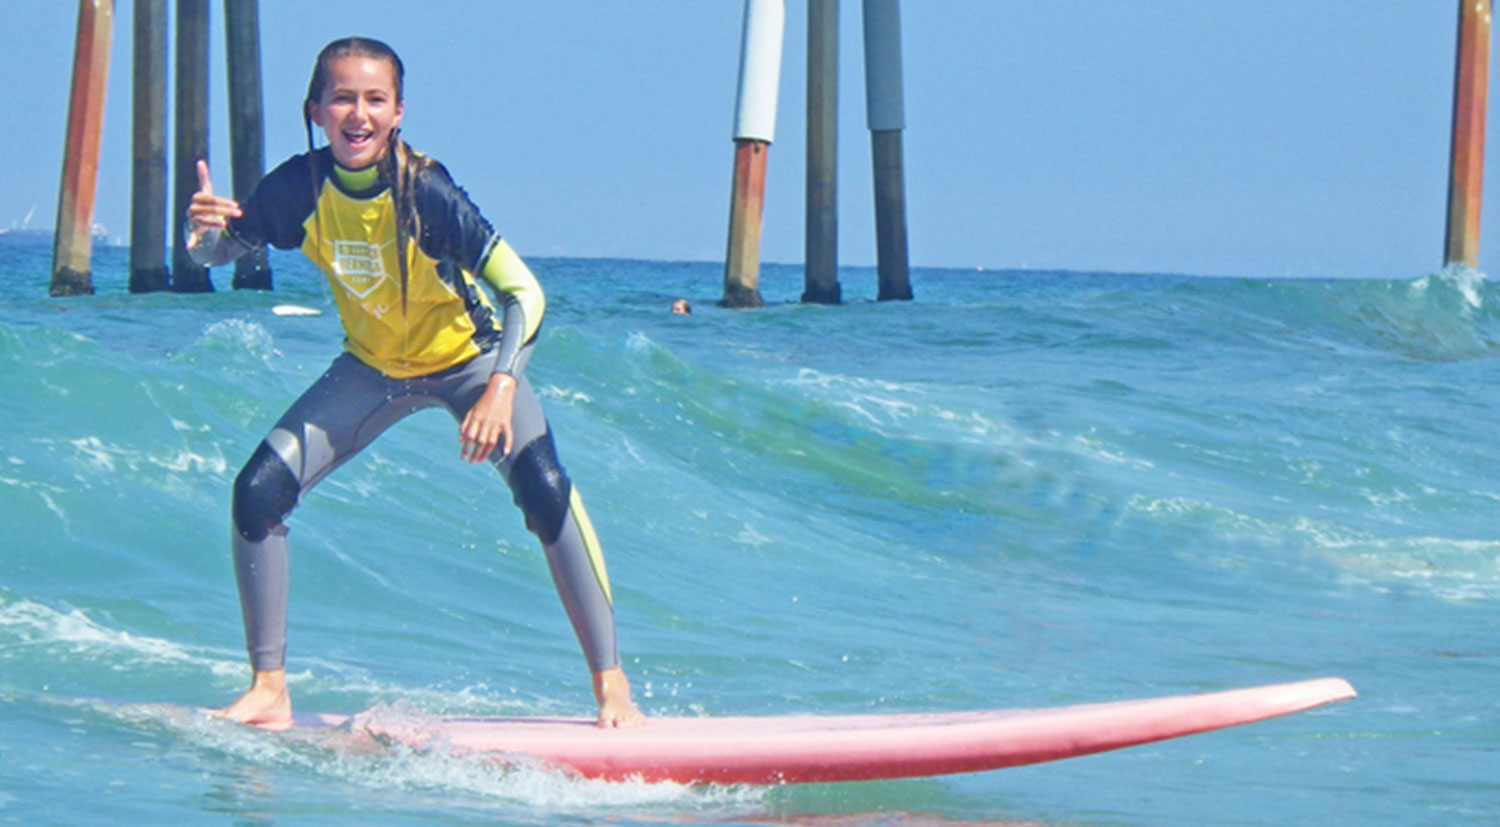 young girl smiling while surfing